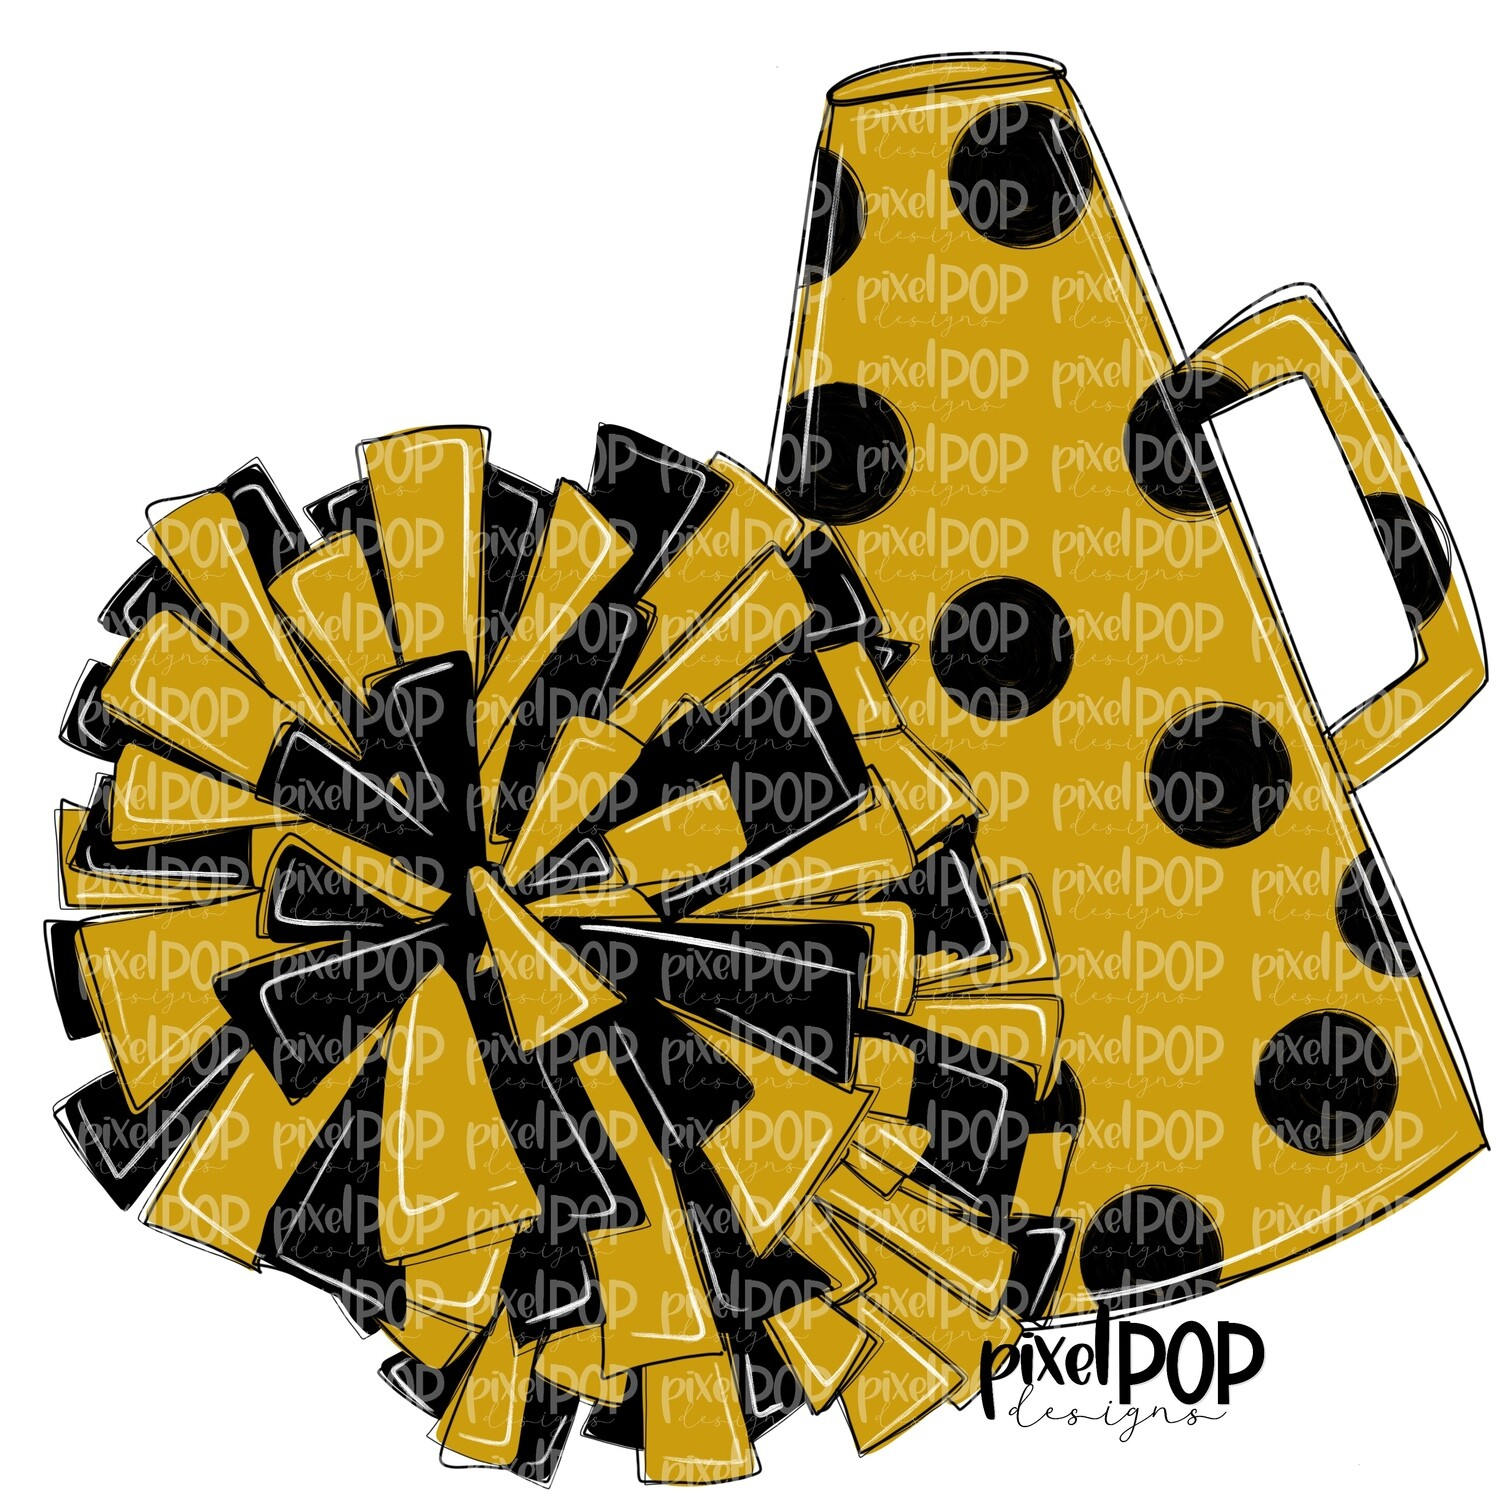 Cheerleading Megaphone and Poms Black and Gold PNG   Cheerleading   Cheer Design   Cheer Art   Cheer Blank   Sports Art